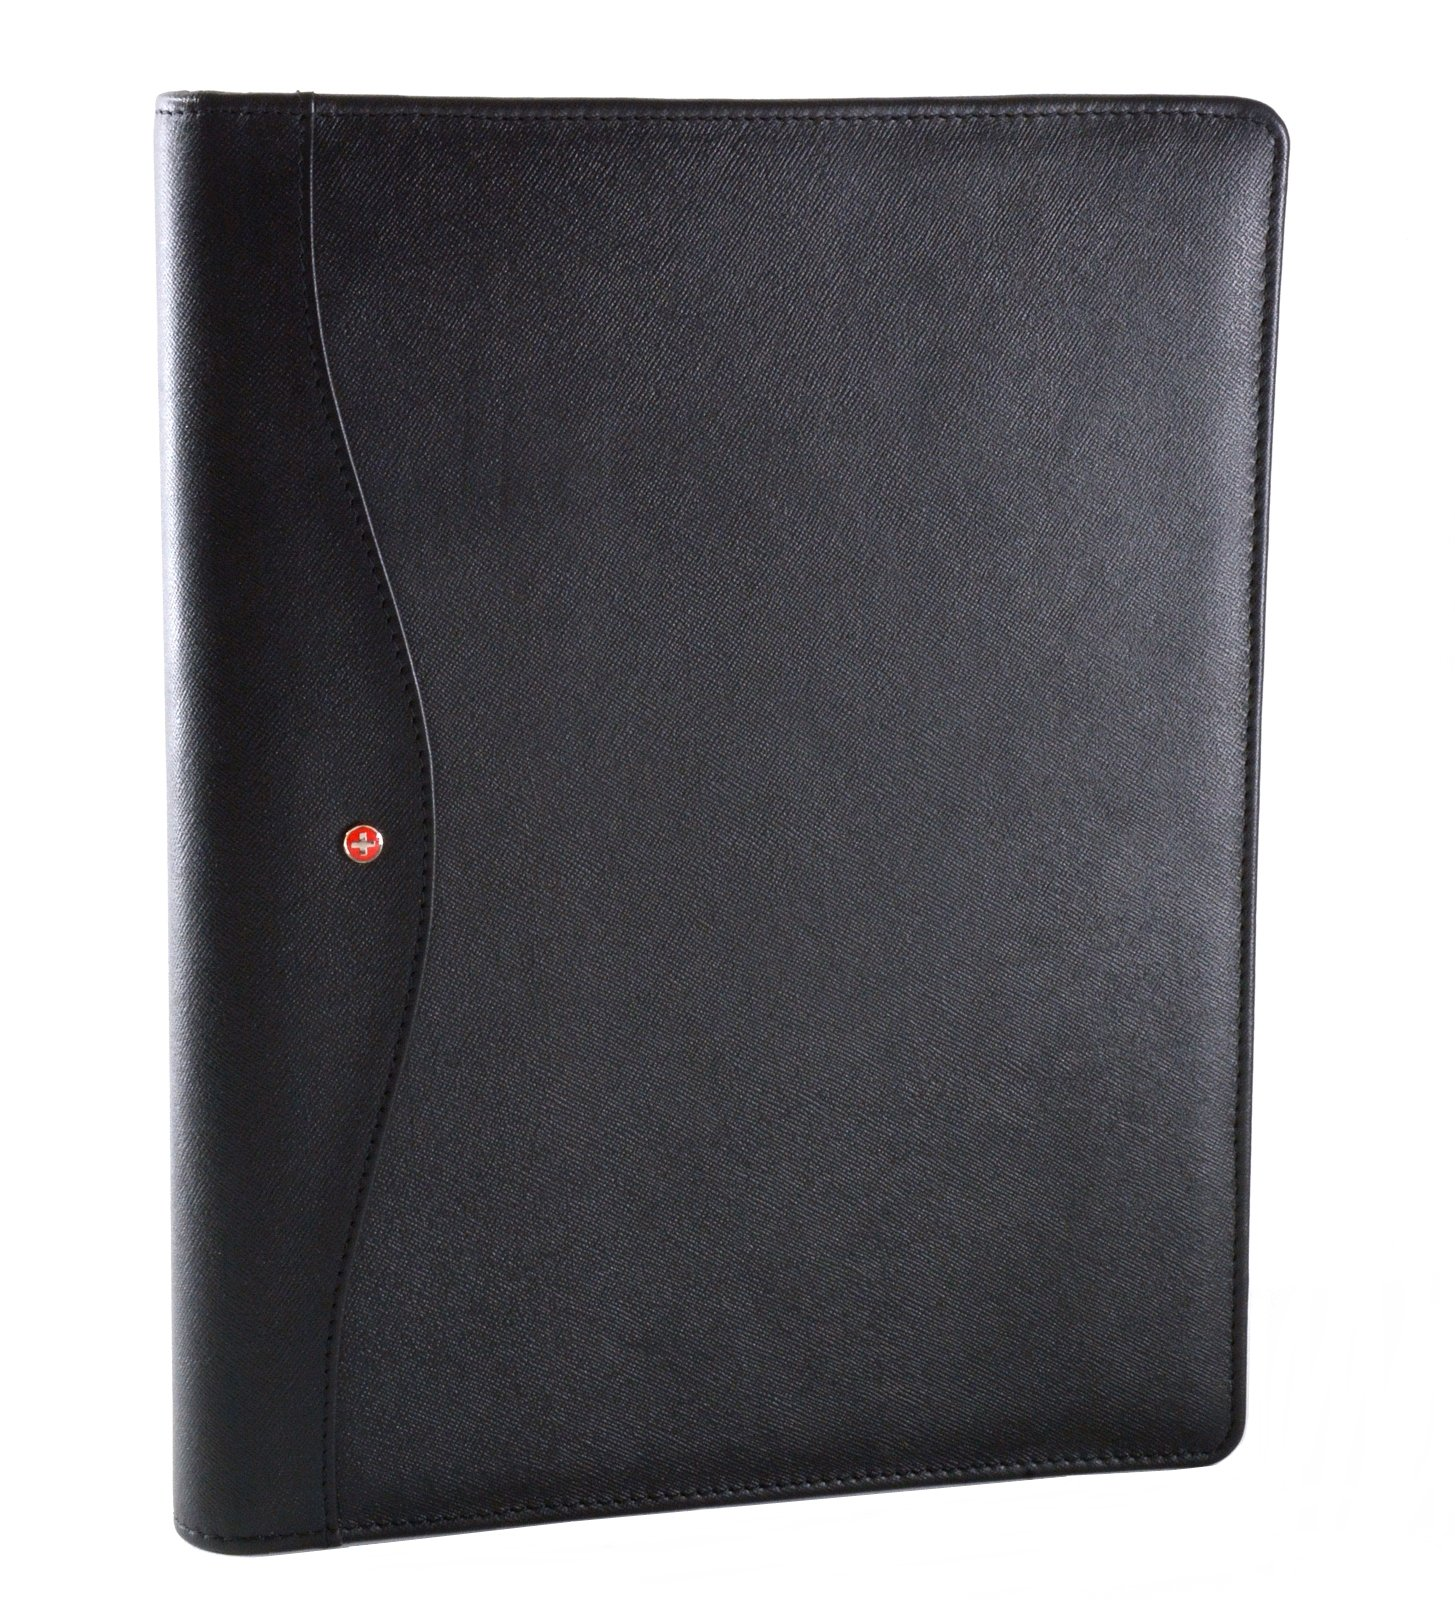 Alpine Swiss Genuine Leather Writing Pad Portfolio Business Case for Left & Right Handed Use with Tablet Sleeve Crosshatch Black